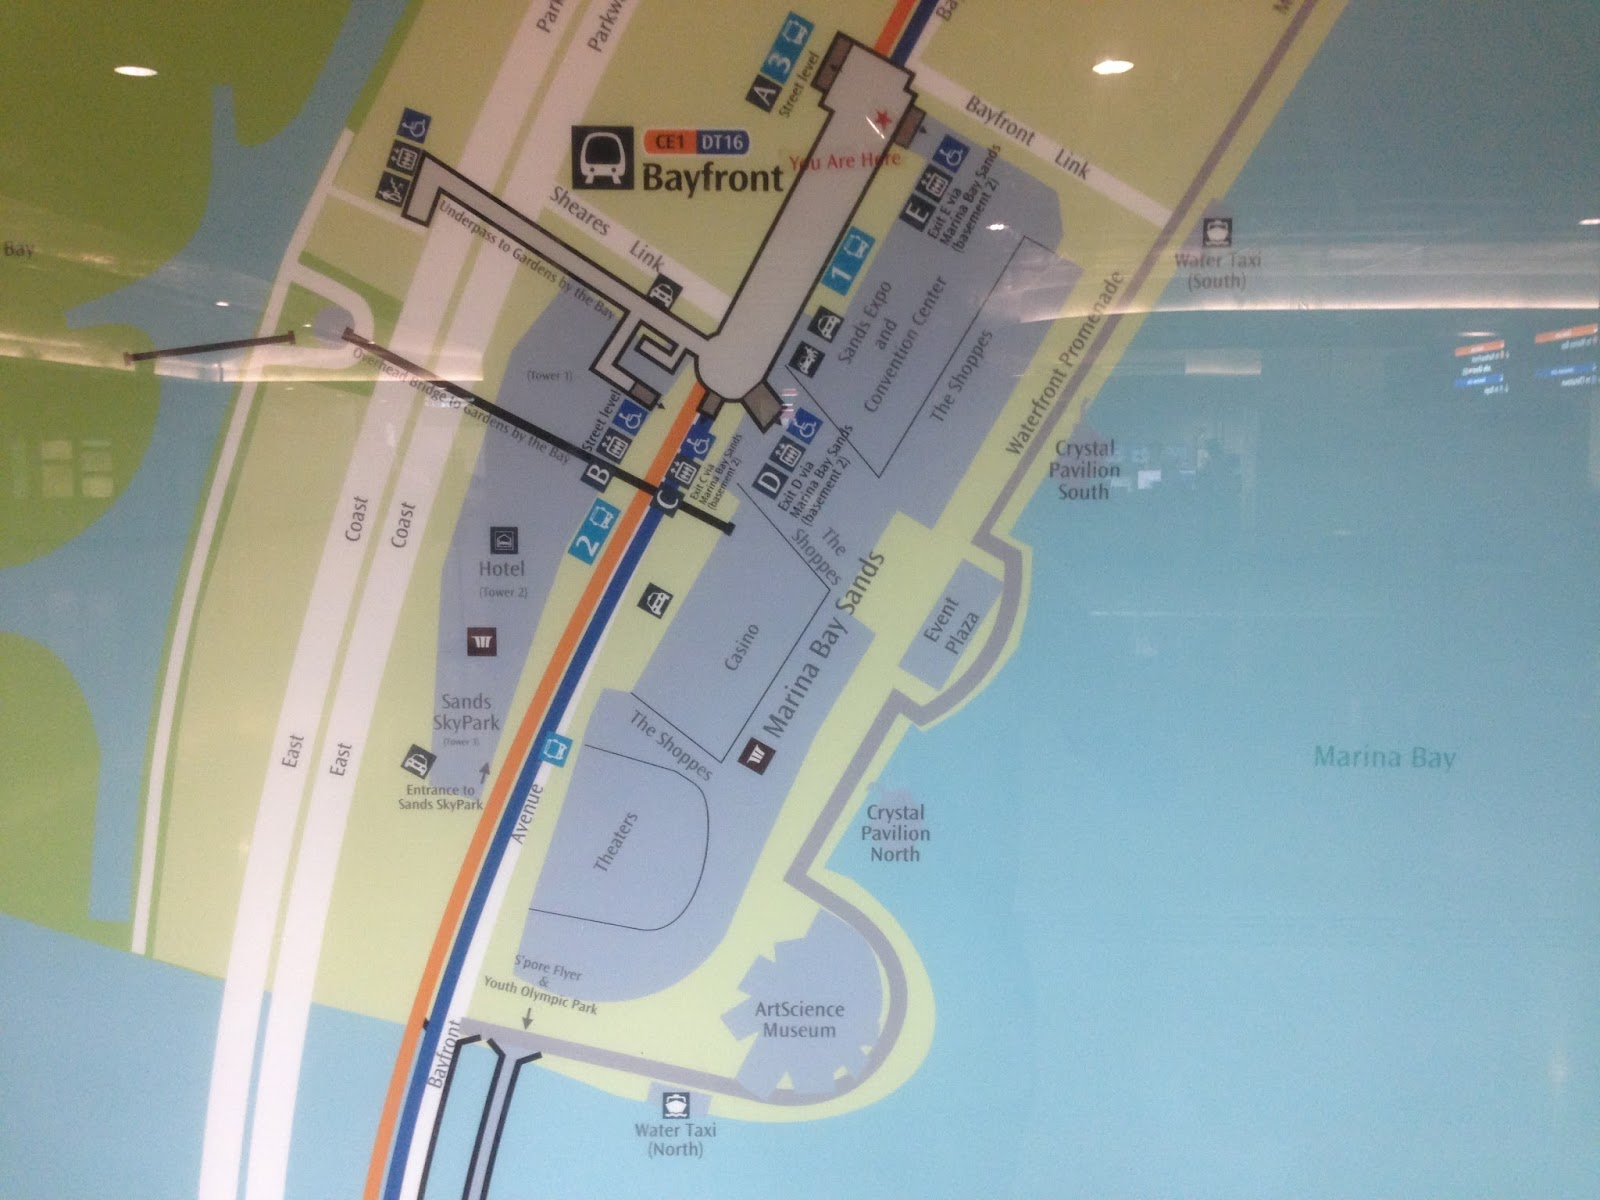 this is the layout of the bayfront mrt station